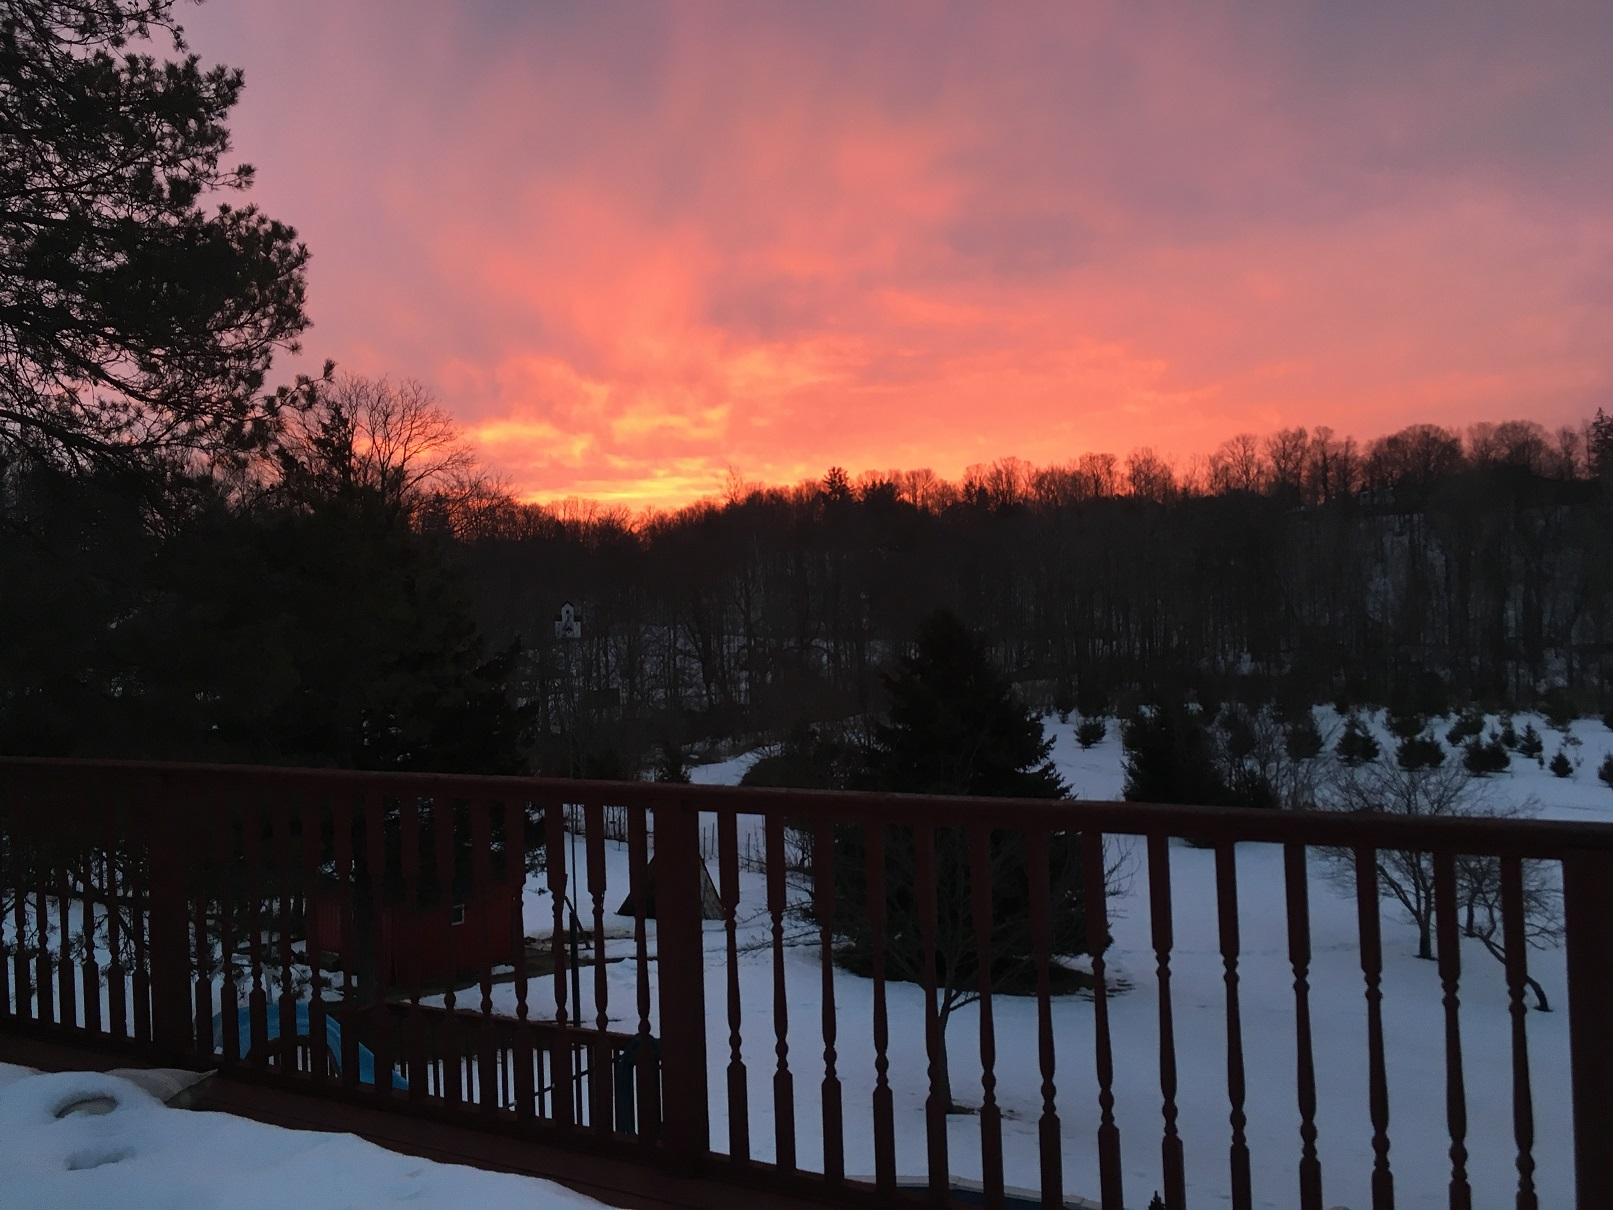 Winter sunrise over the field and goat pen, Central Elgin, Ontario